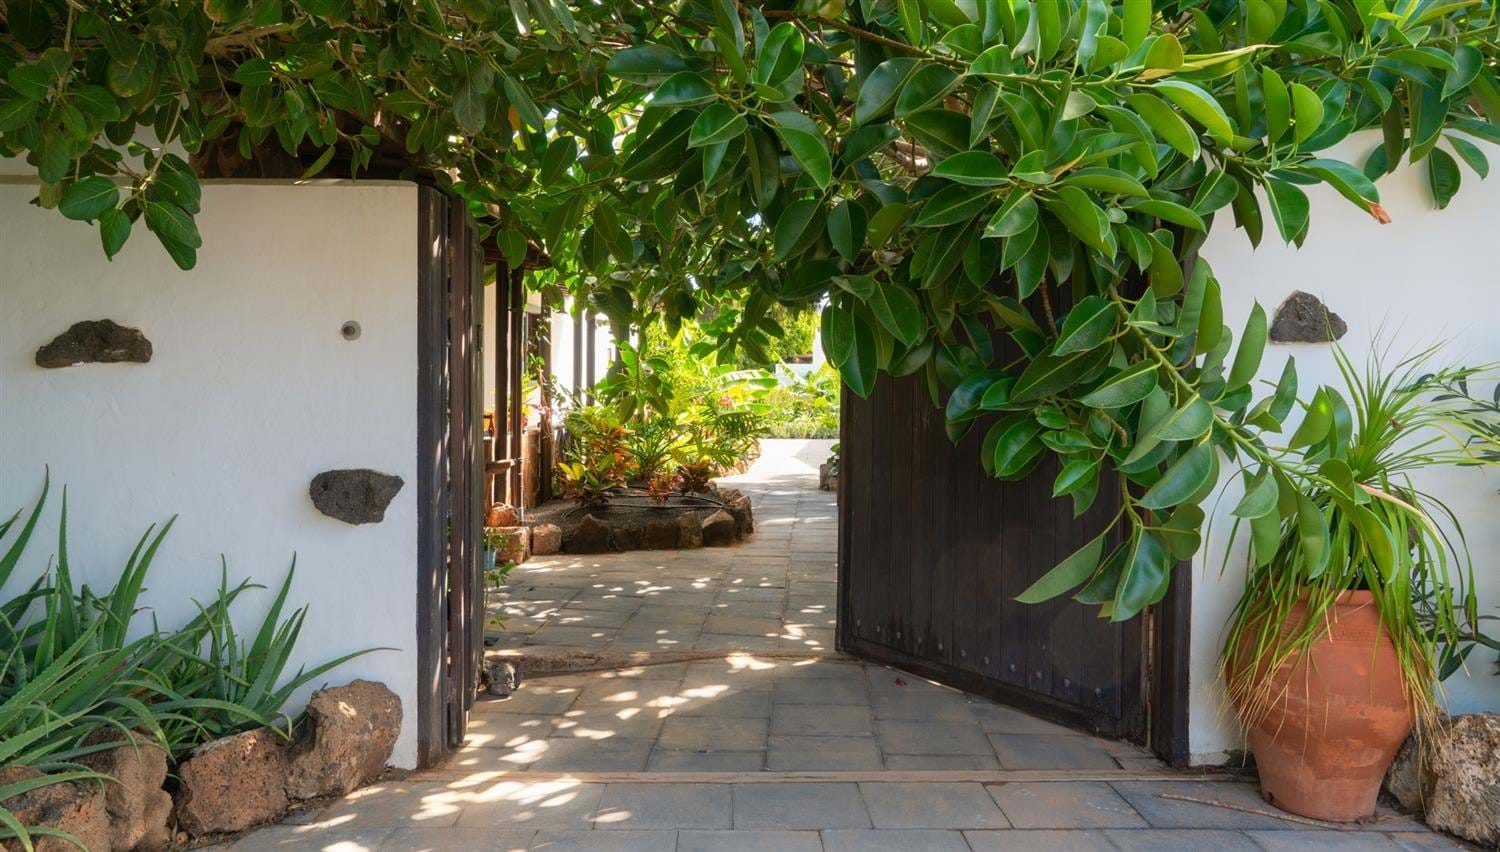 Large old wooden gate opening into The Secret Garden Villa at Finca Botanico in Lanzarote